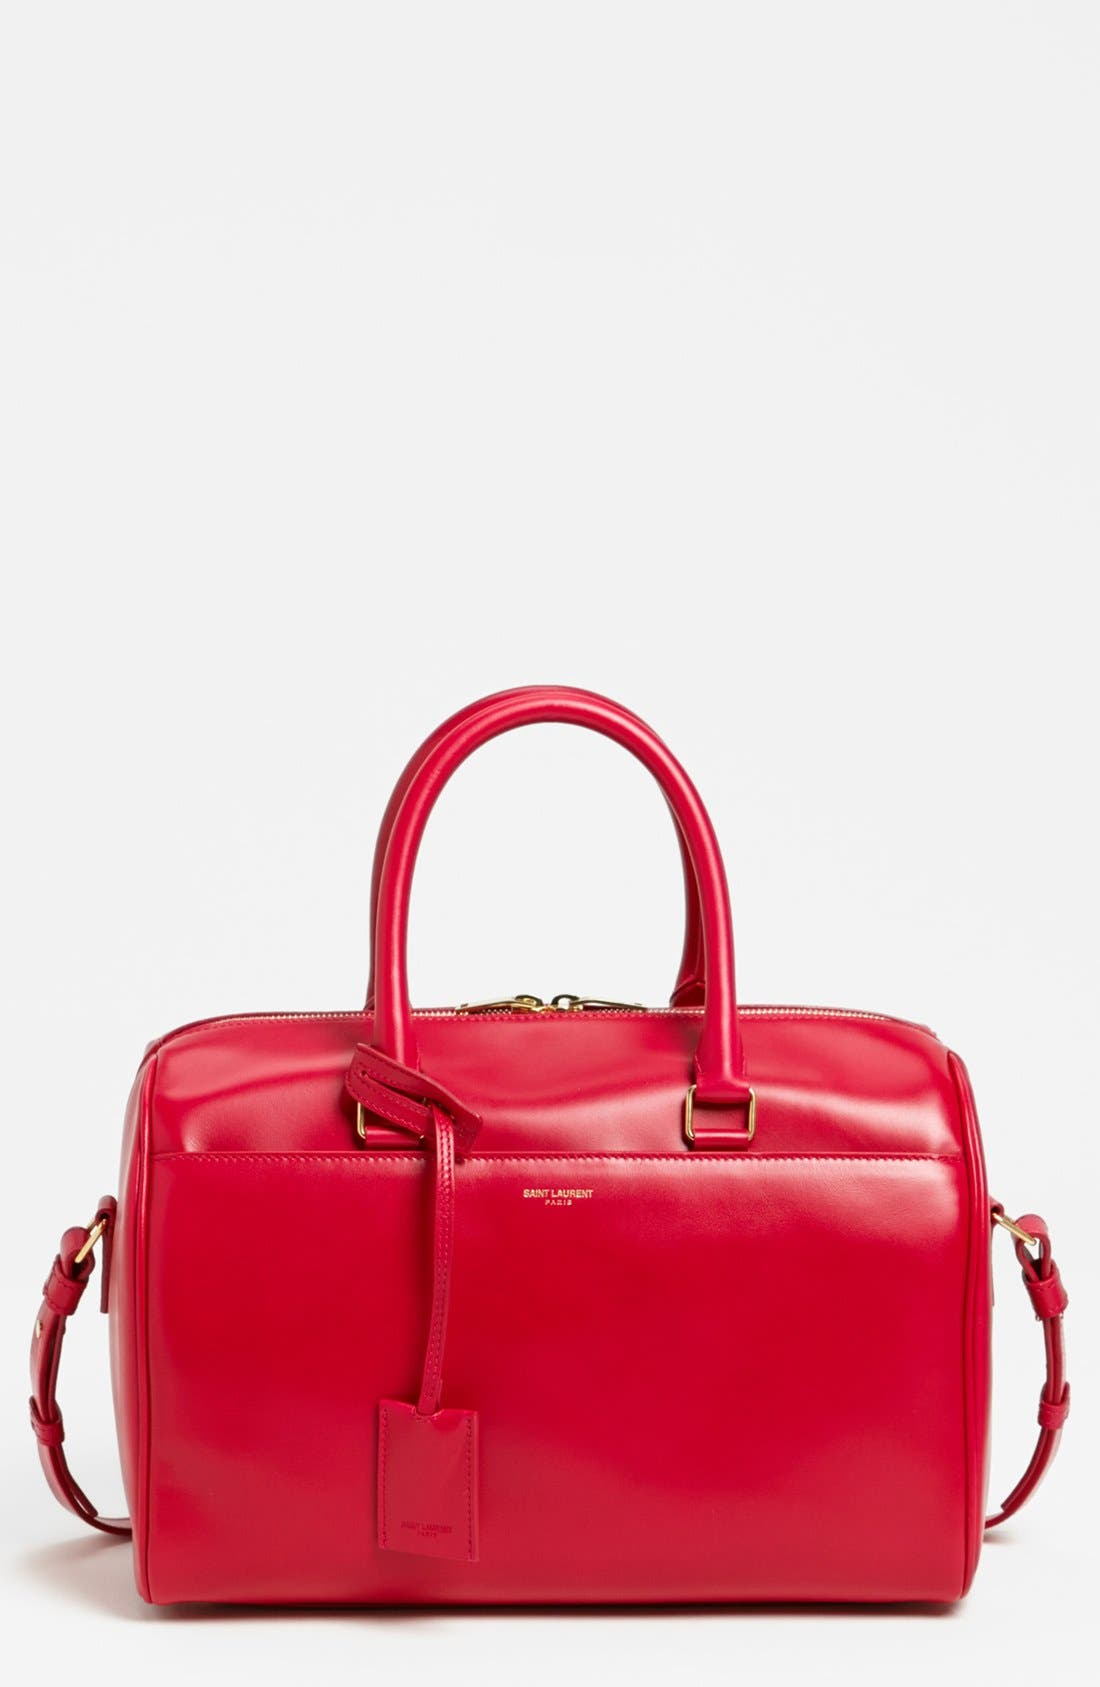 Main Image - Saint Laurent 'Medium Duffle 6' Leather Satchel